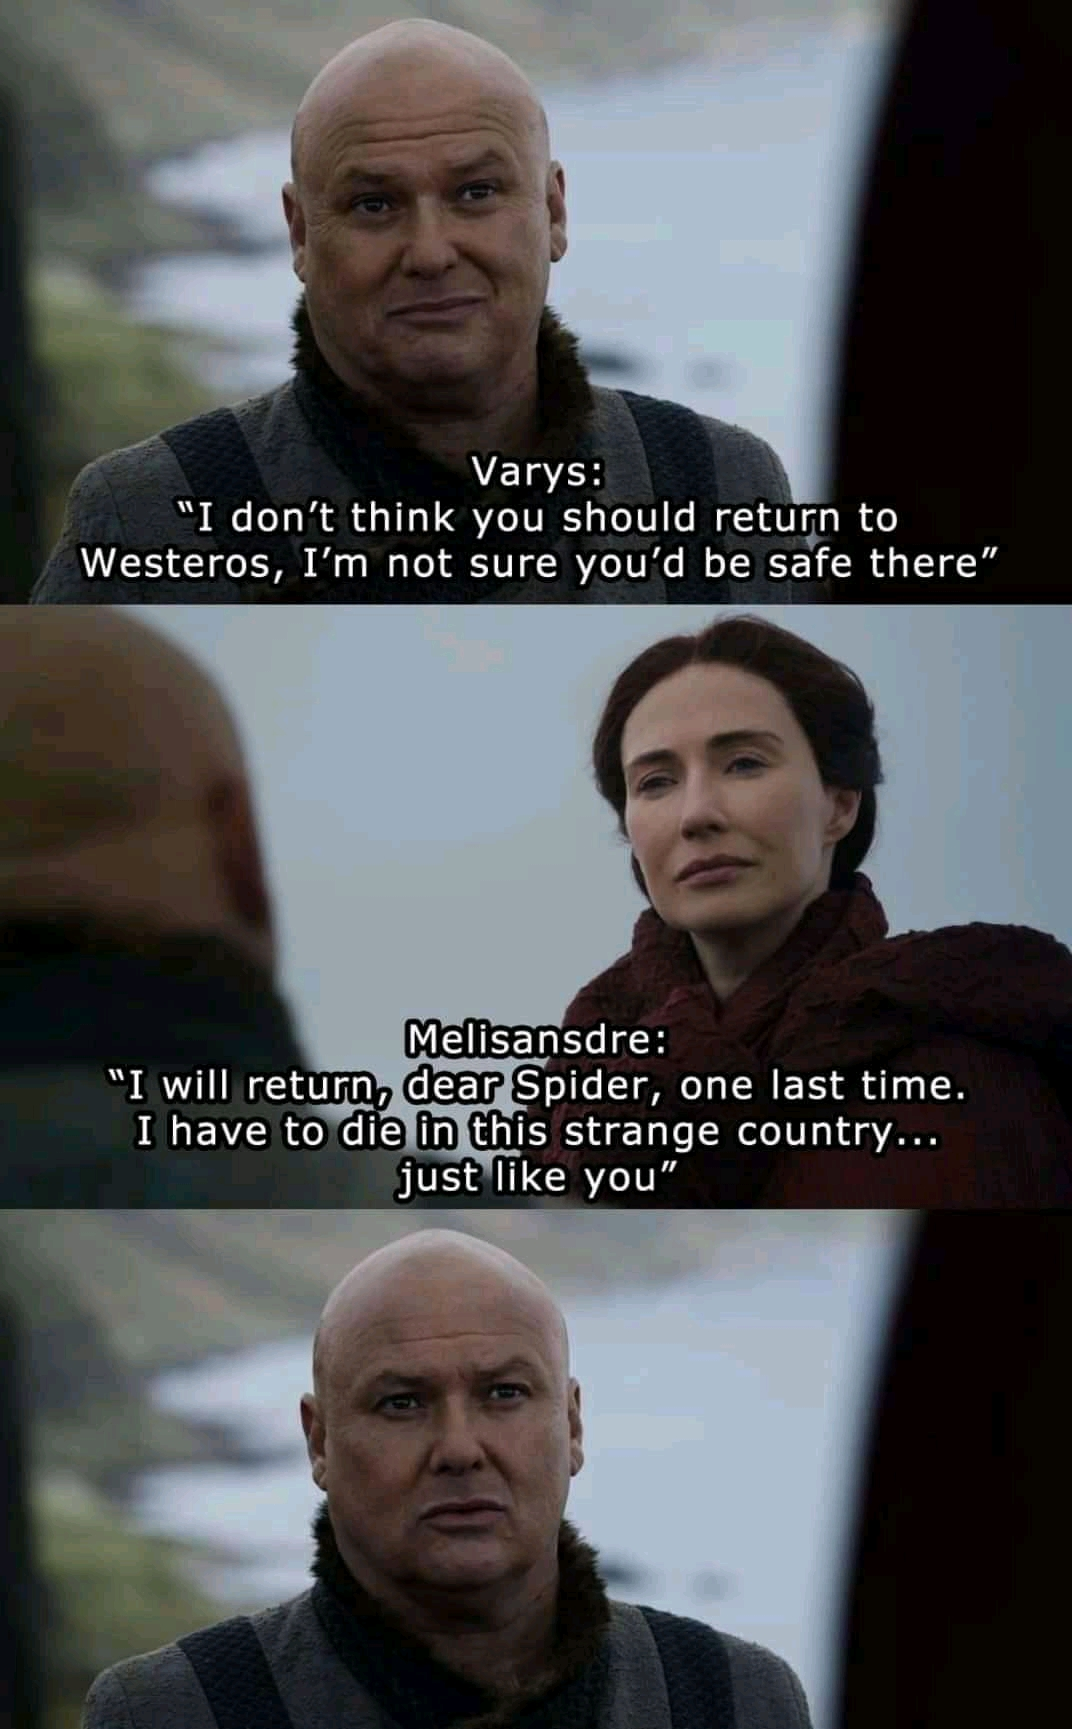 Prophecy of Varys' death